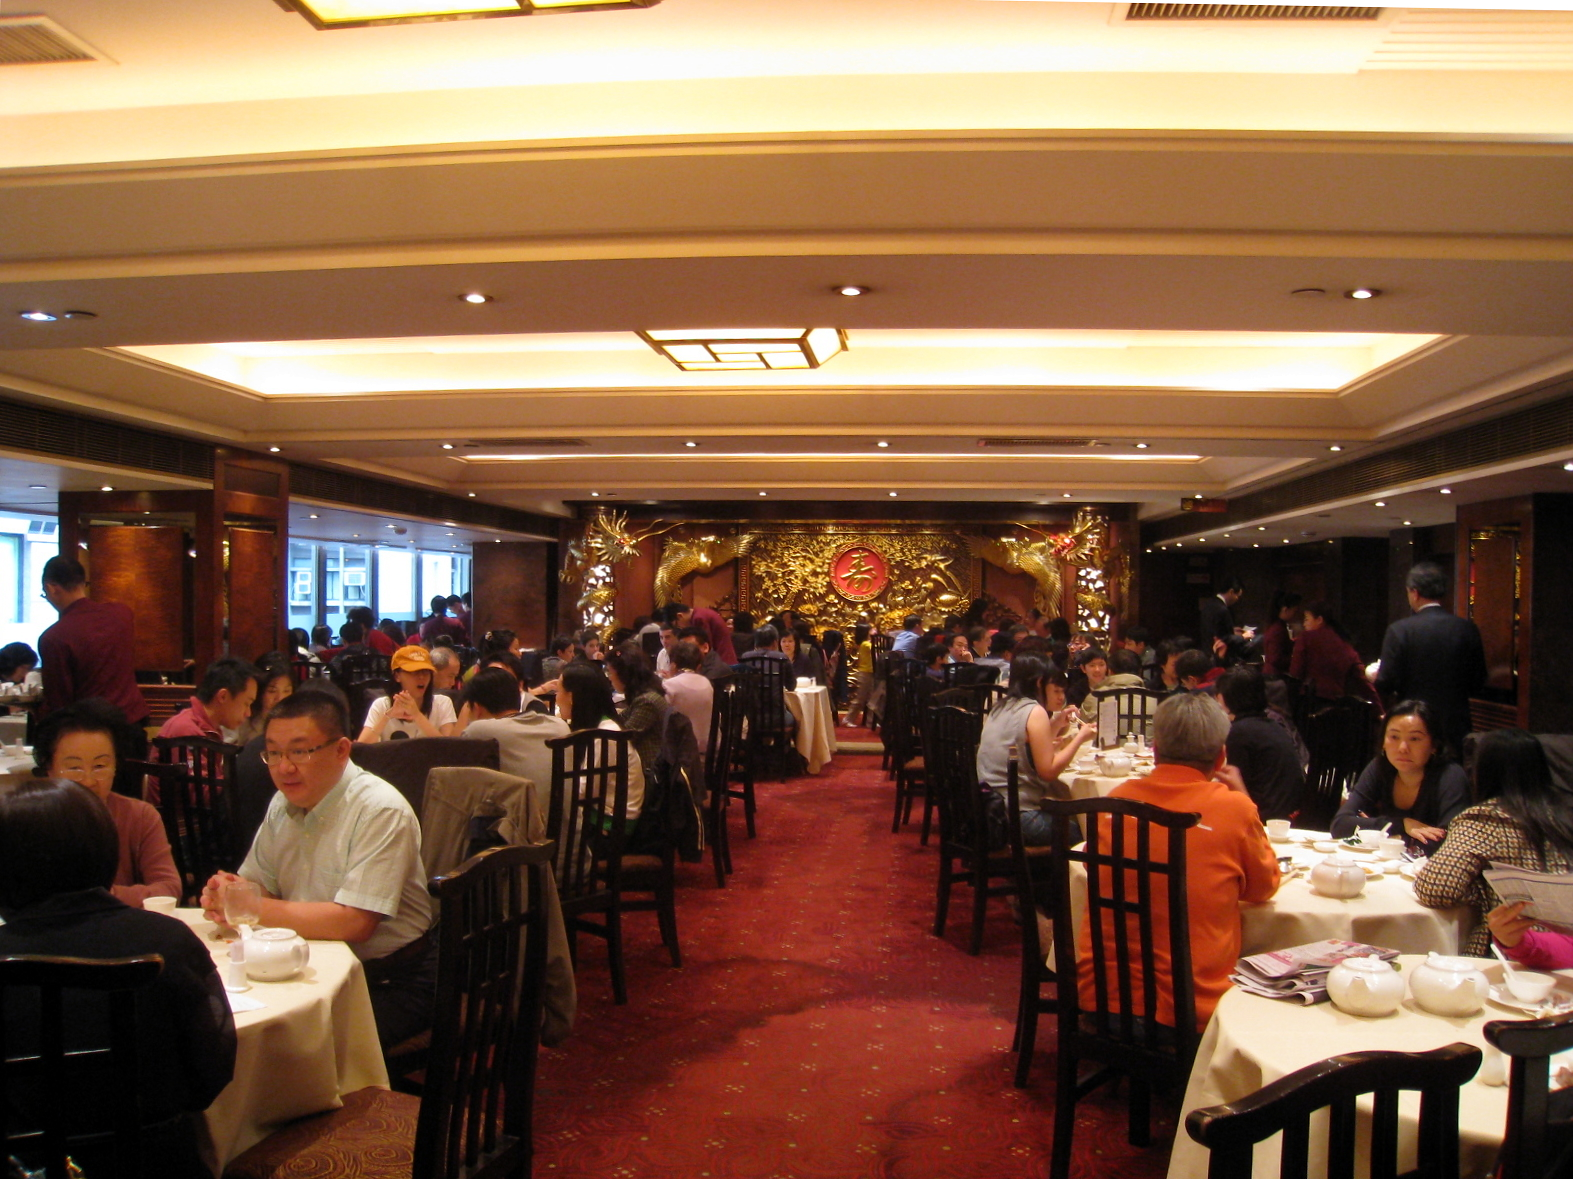 Http Commons Wikimedia Org Wiki File Yung Kee Restaurant Interior 2008 Jpg